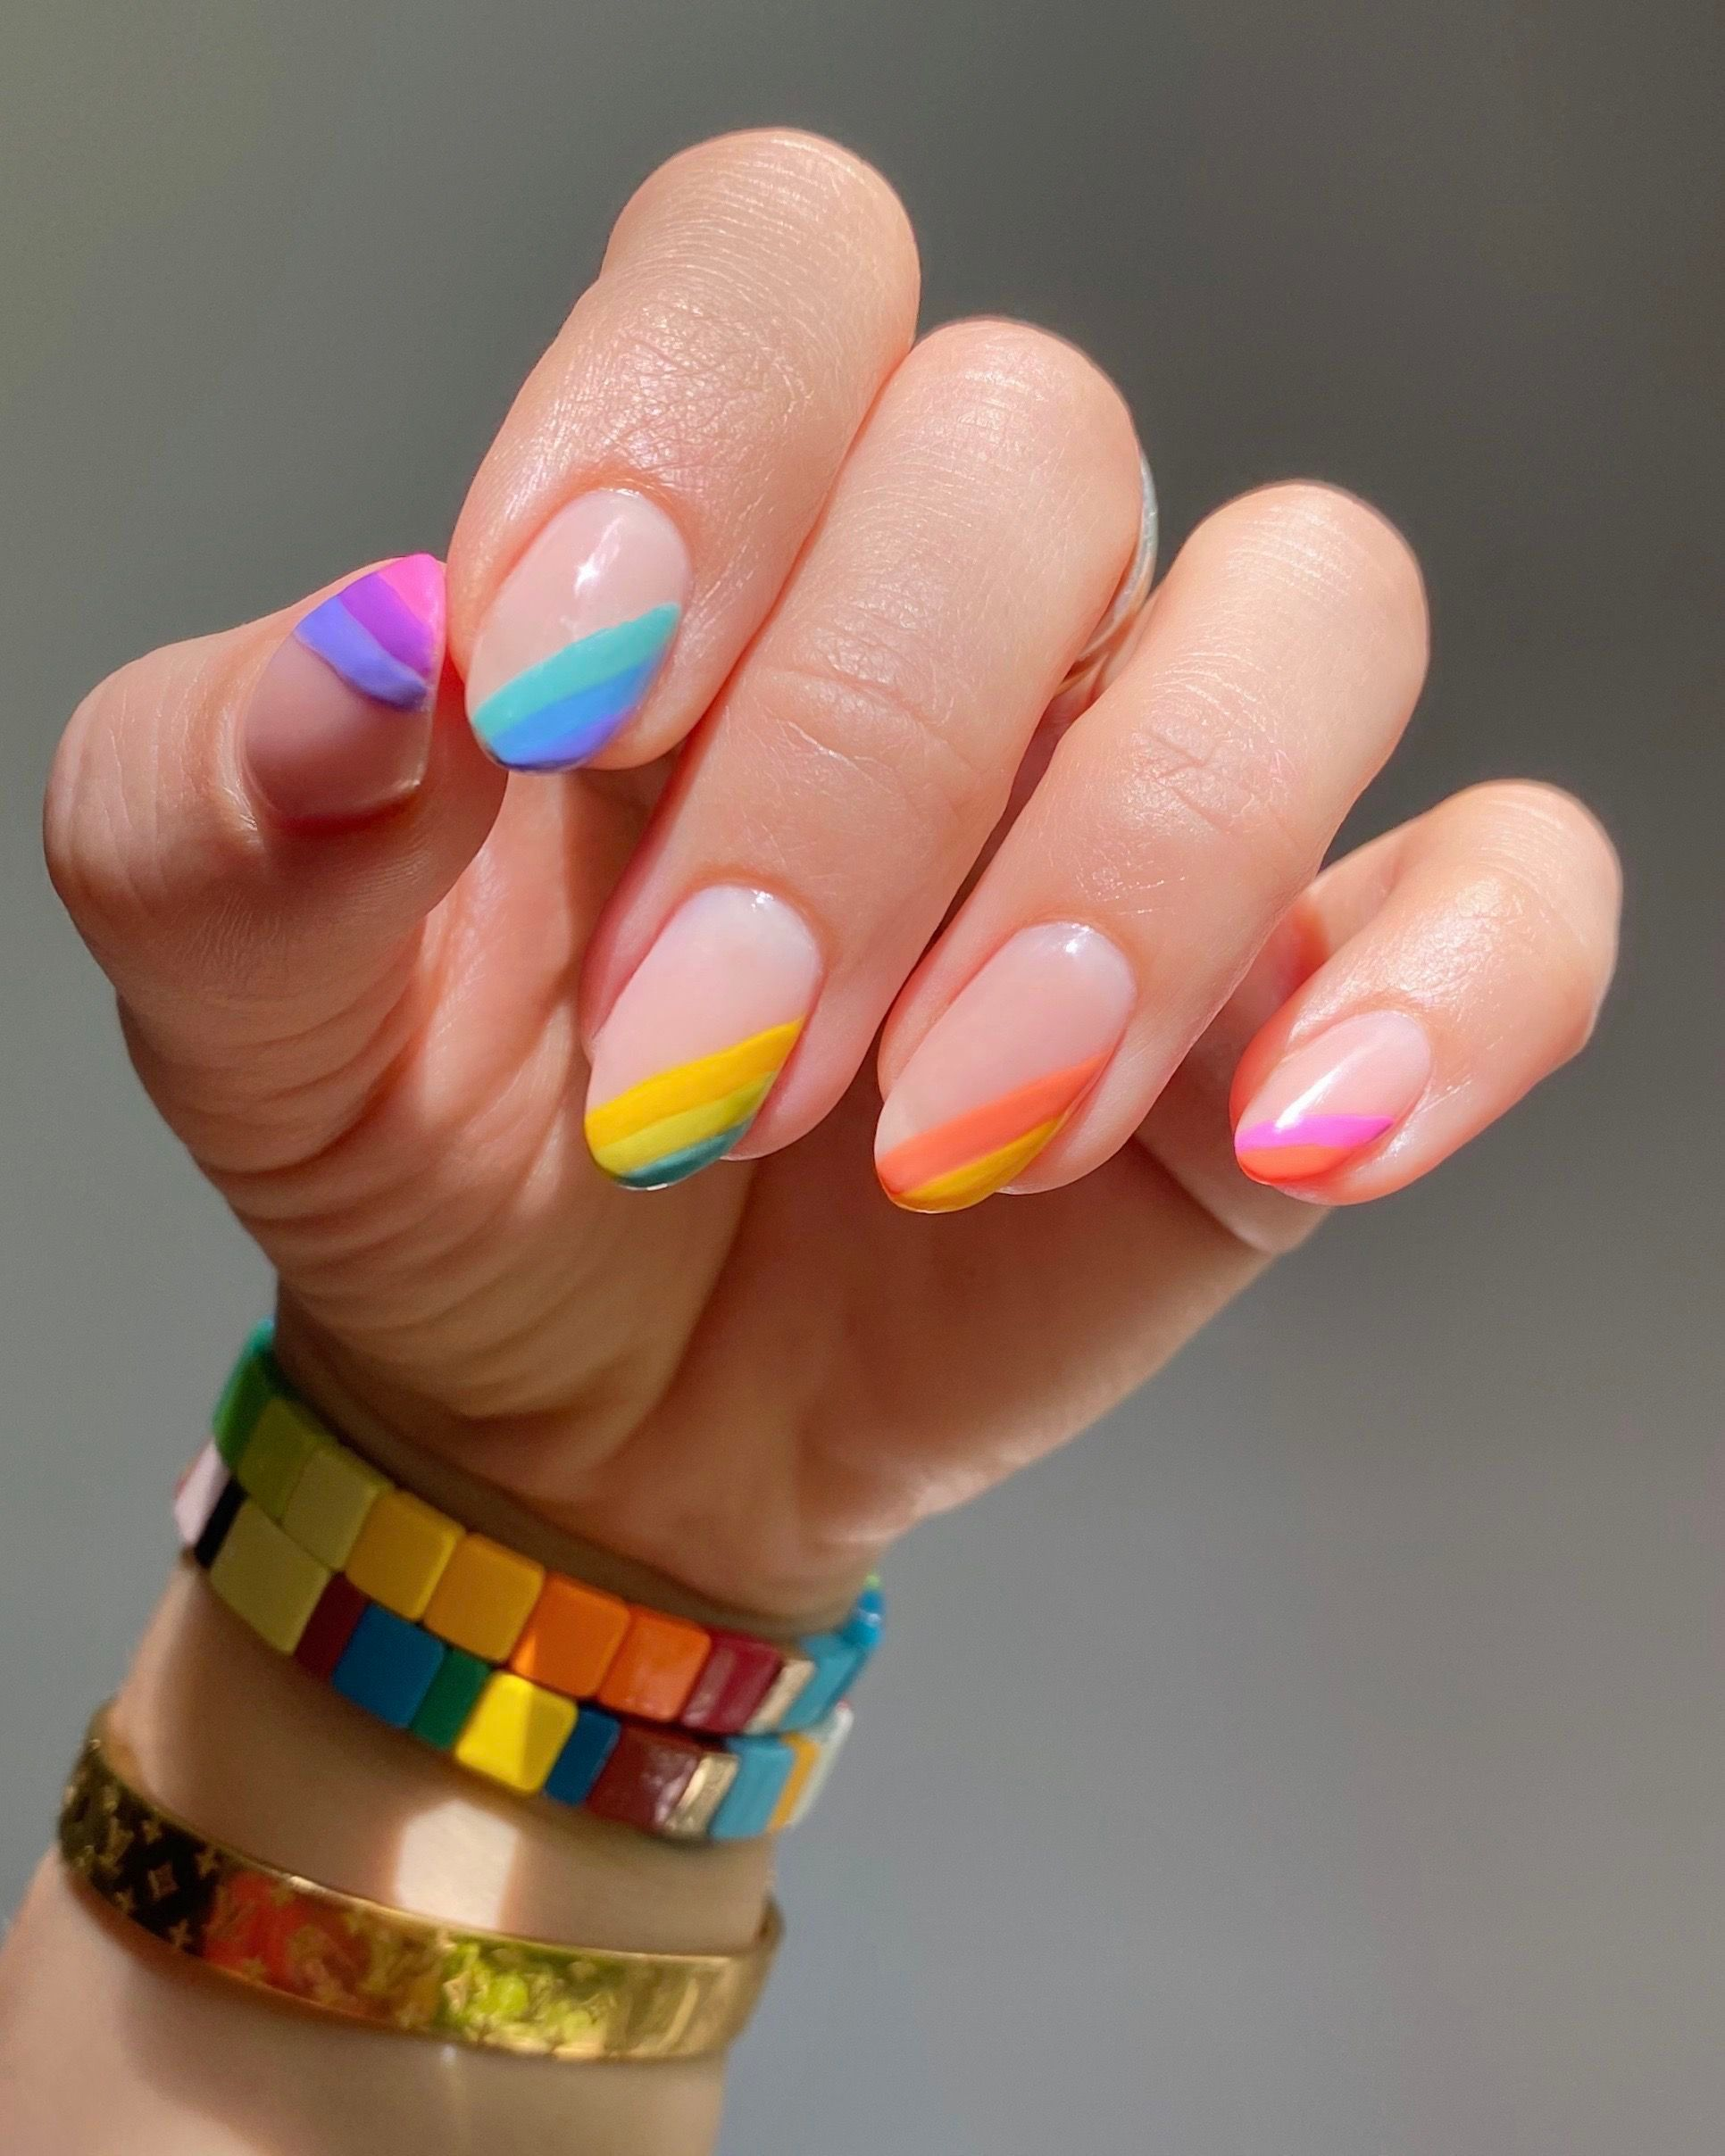 NAIL ART HOW-TO: Rainbow Candy PRIDE Mani!  — Julie Off Duty   New York   Celebrity Manicurist & Bea